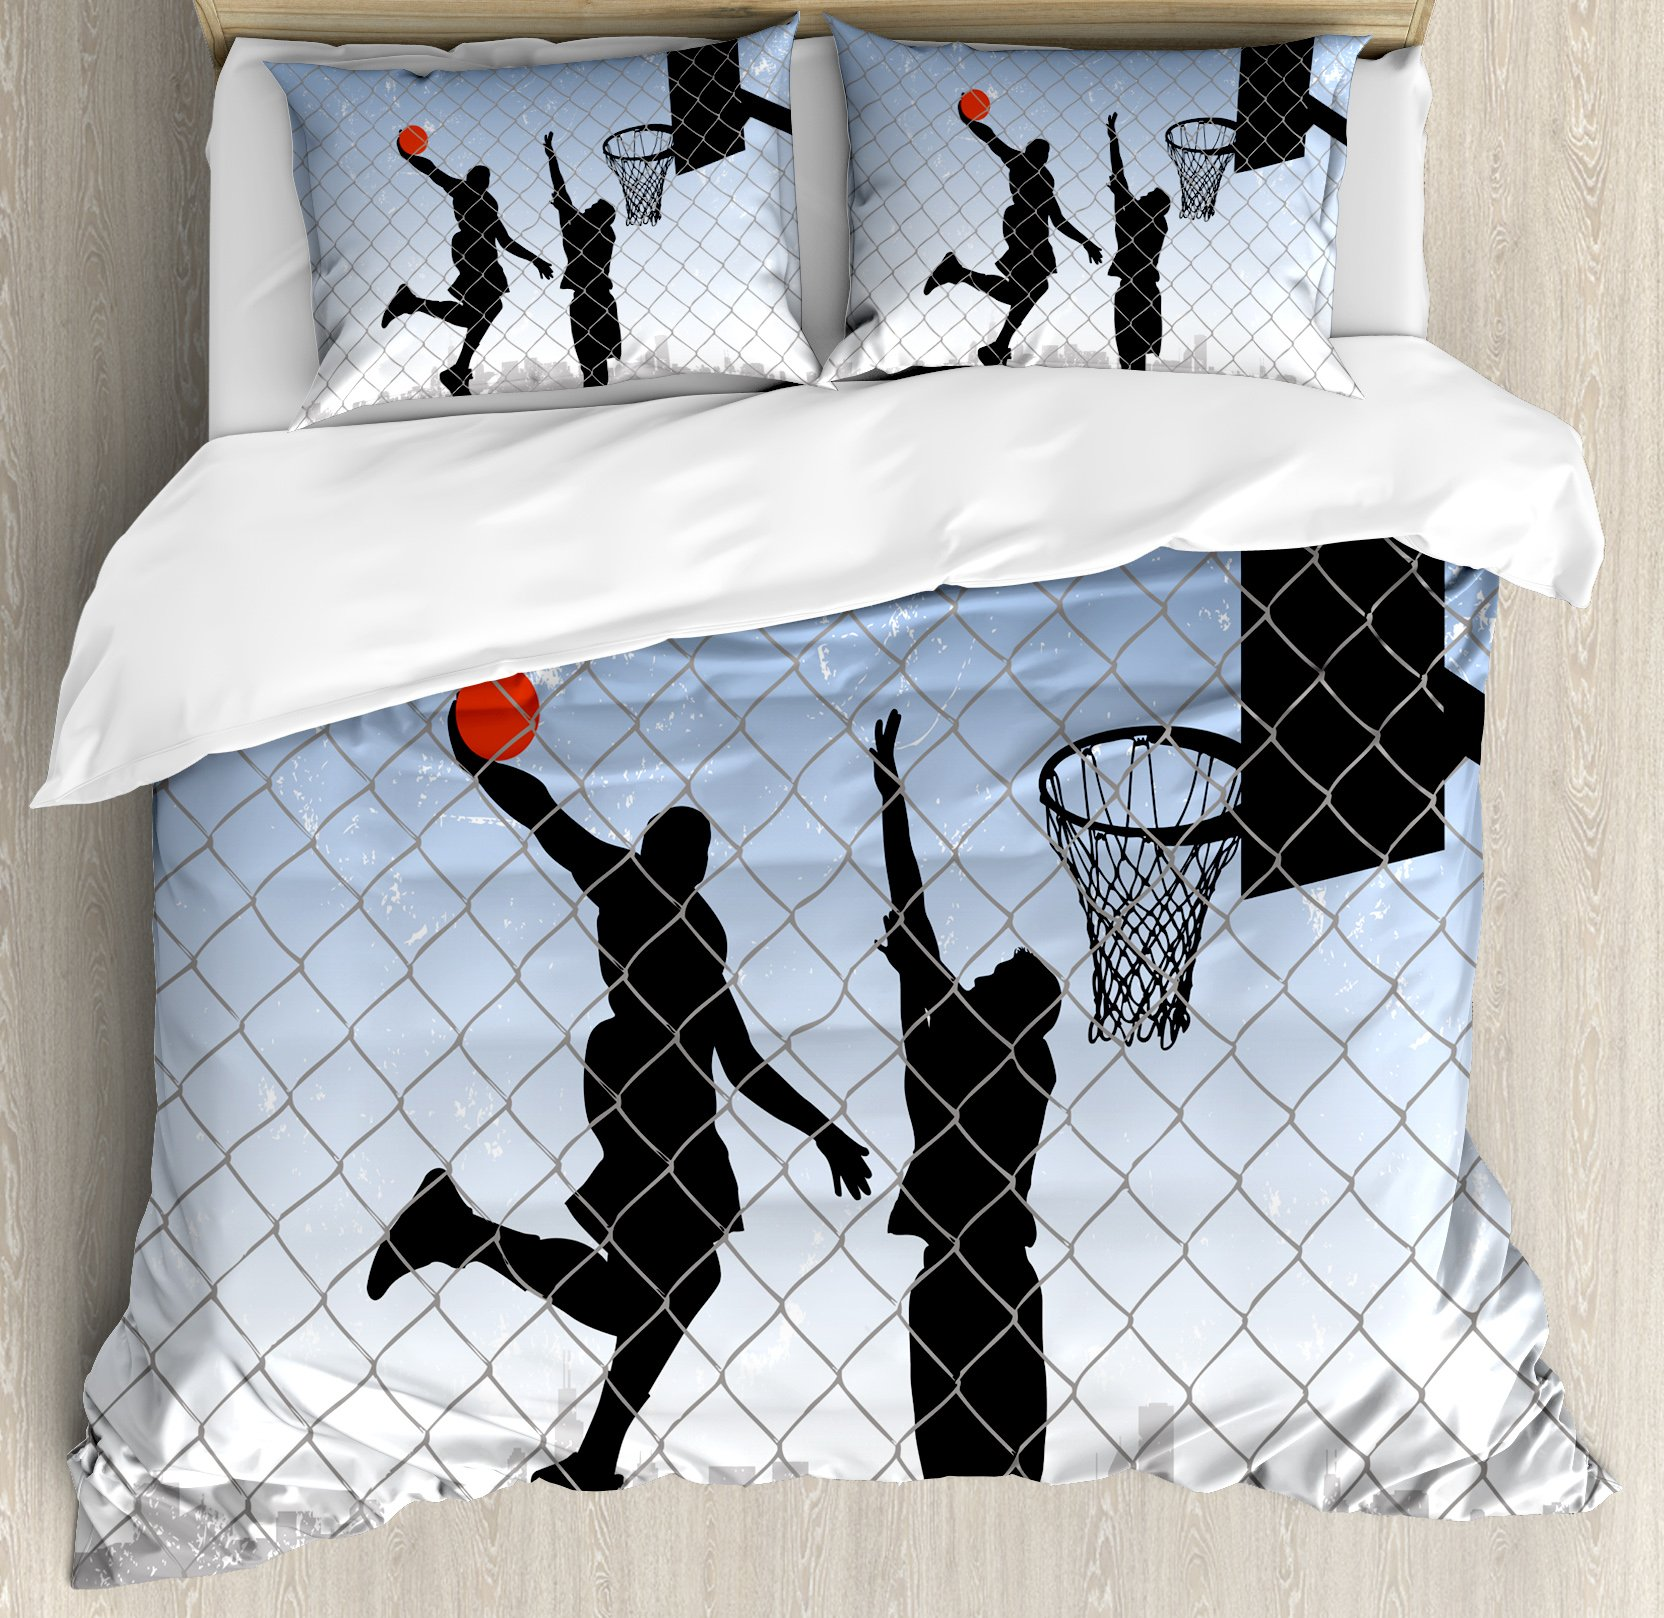 Lunarable Boy's Room Duvet Cover Set Queen Size by, Basketball in the Street Theme Two Players on Grungy Damaged Backdrop, Decorative 3 Piece Bedding Set with 2 Pillow Shams, Pale Blue Grey Black